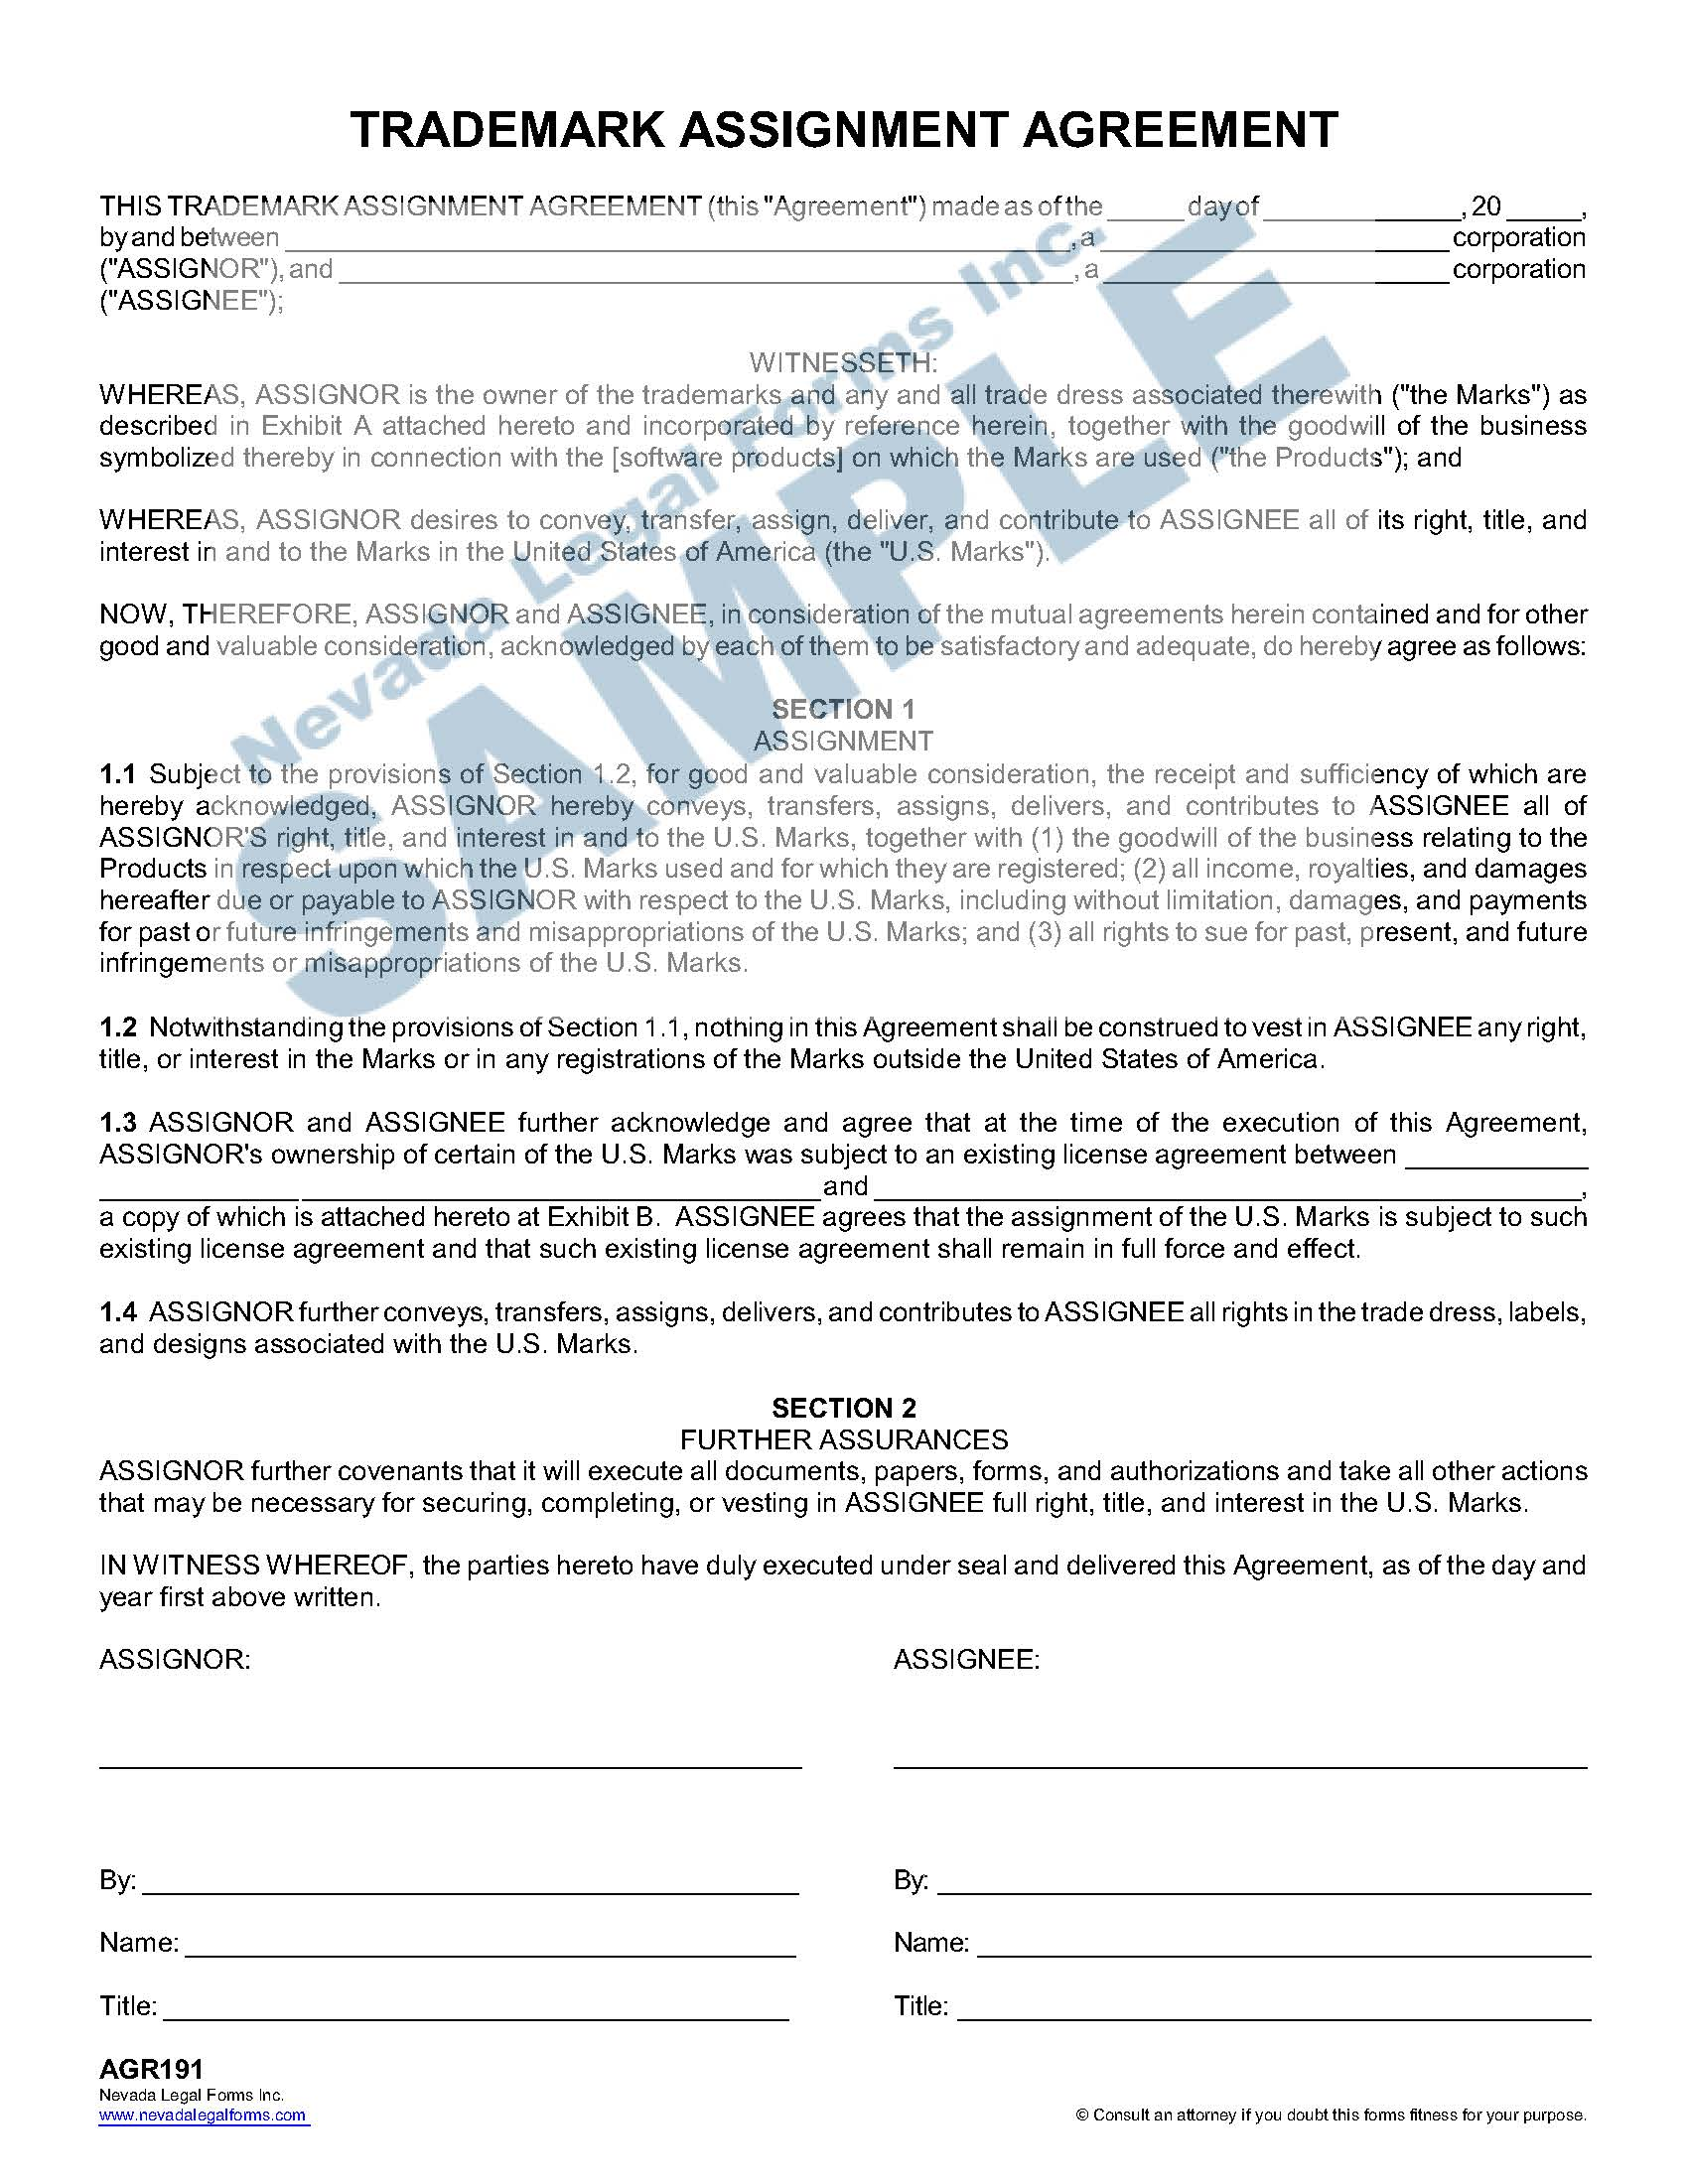 Trademark Assignment Agreement